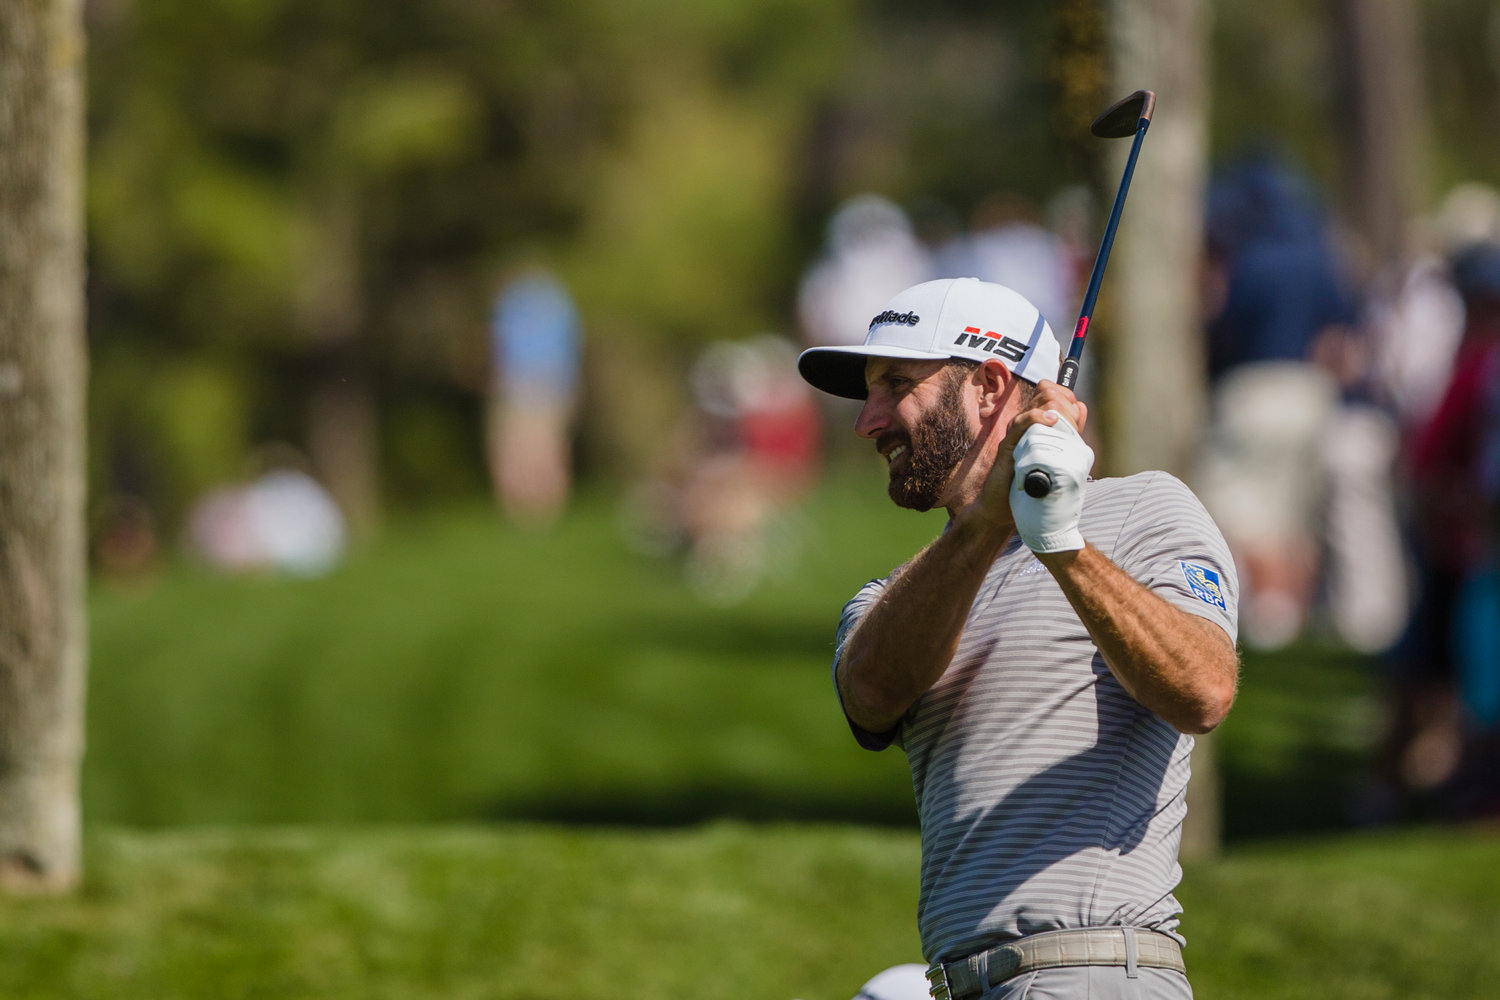 Dustin Johnson eyes up a shot at THE PLAYERS. He's 3-under par after the first round.